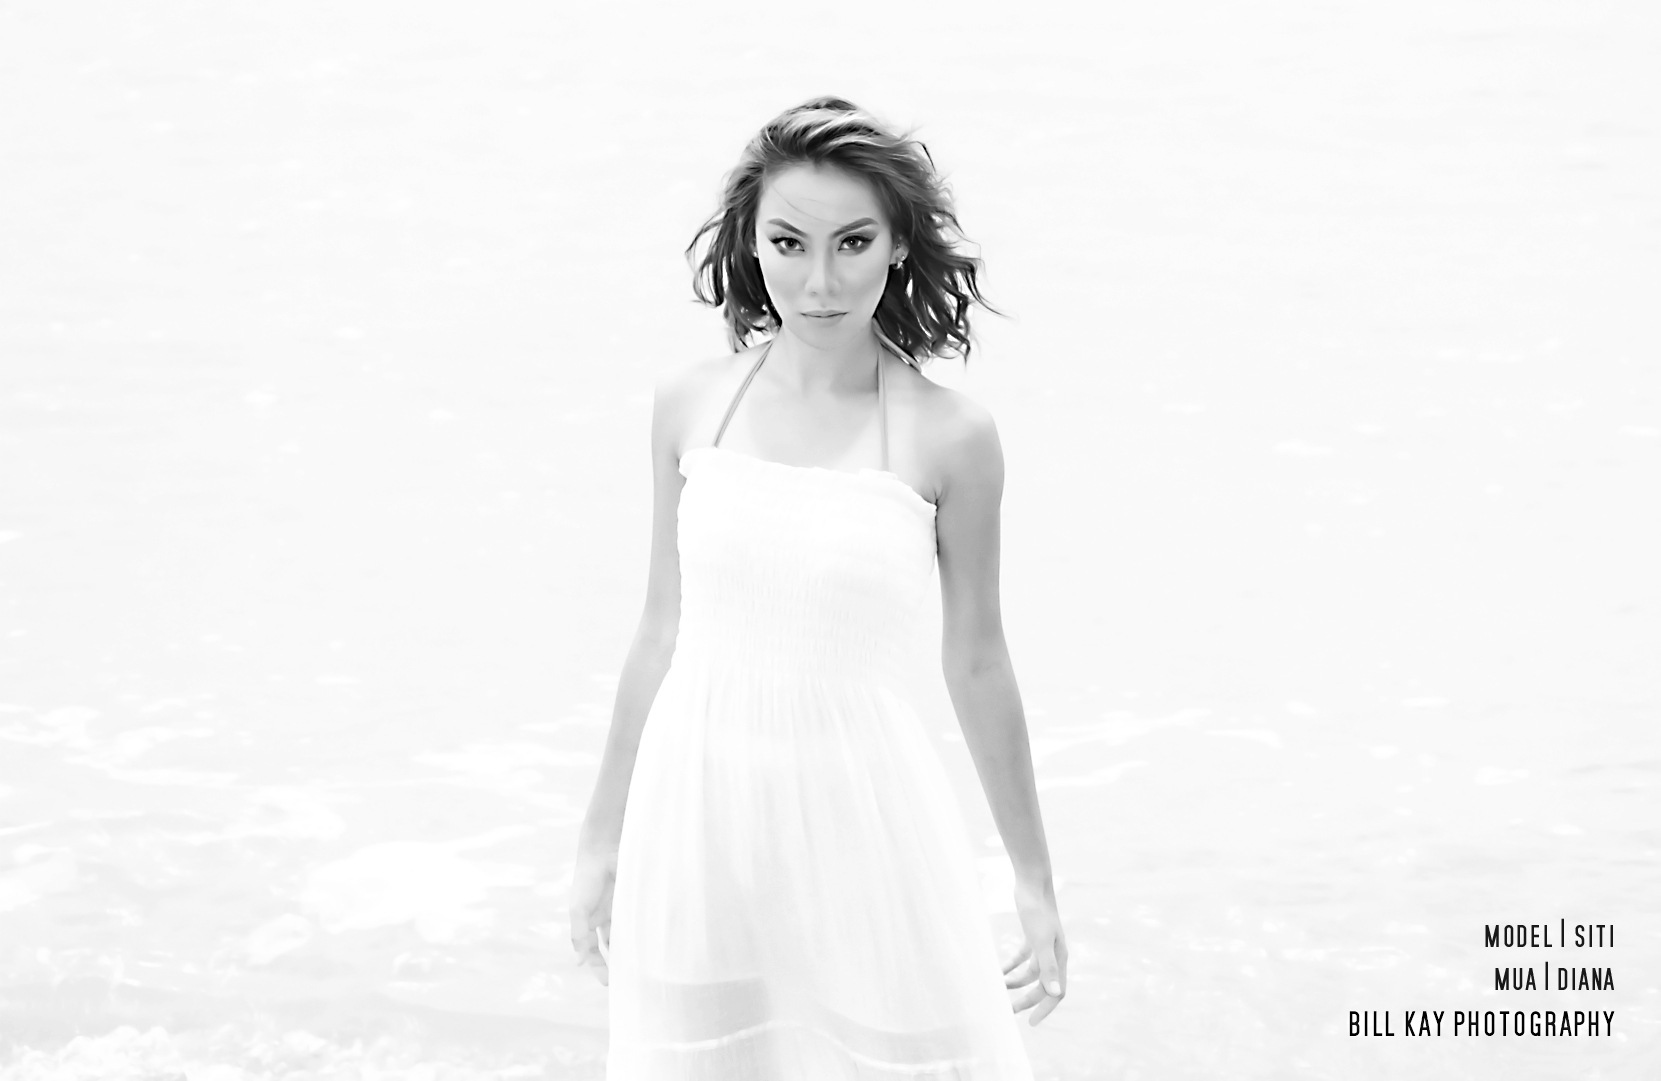 Black and White by Bill Kay Photography